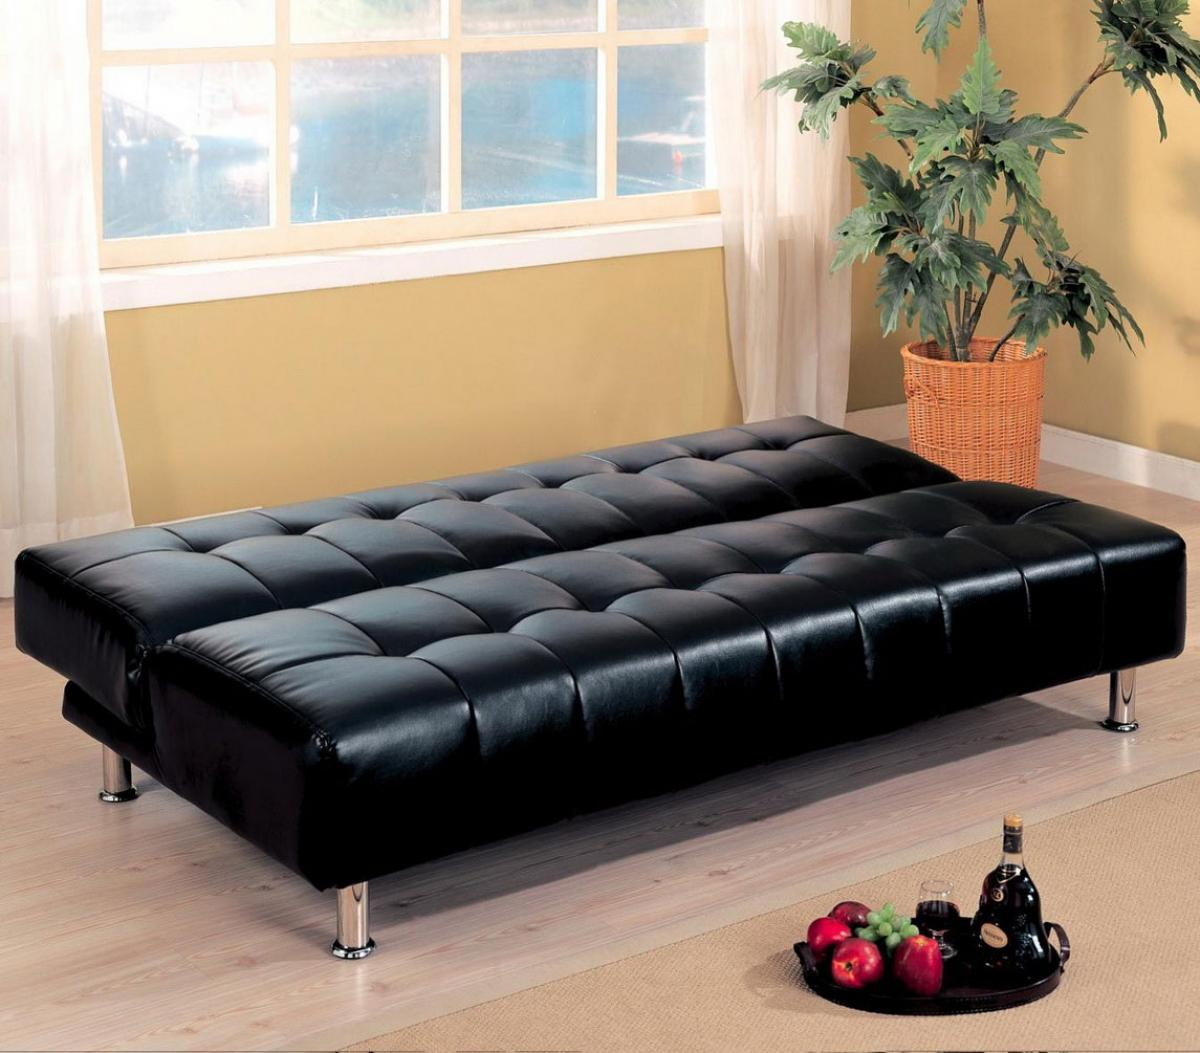 Modern Tufted Black Sofa Bed For Living Room Home Inspiring